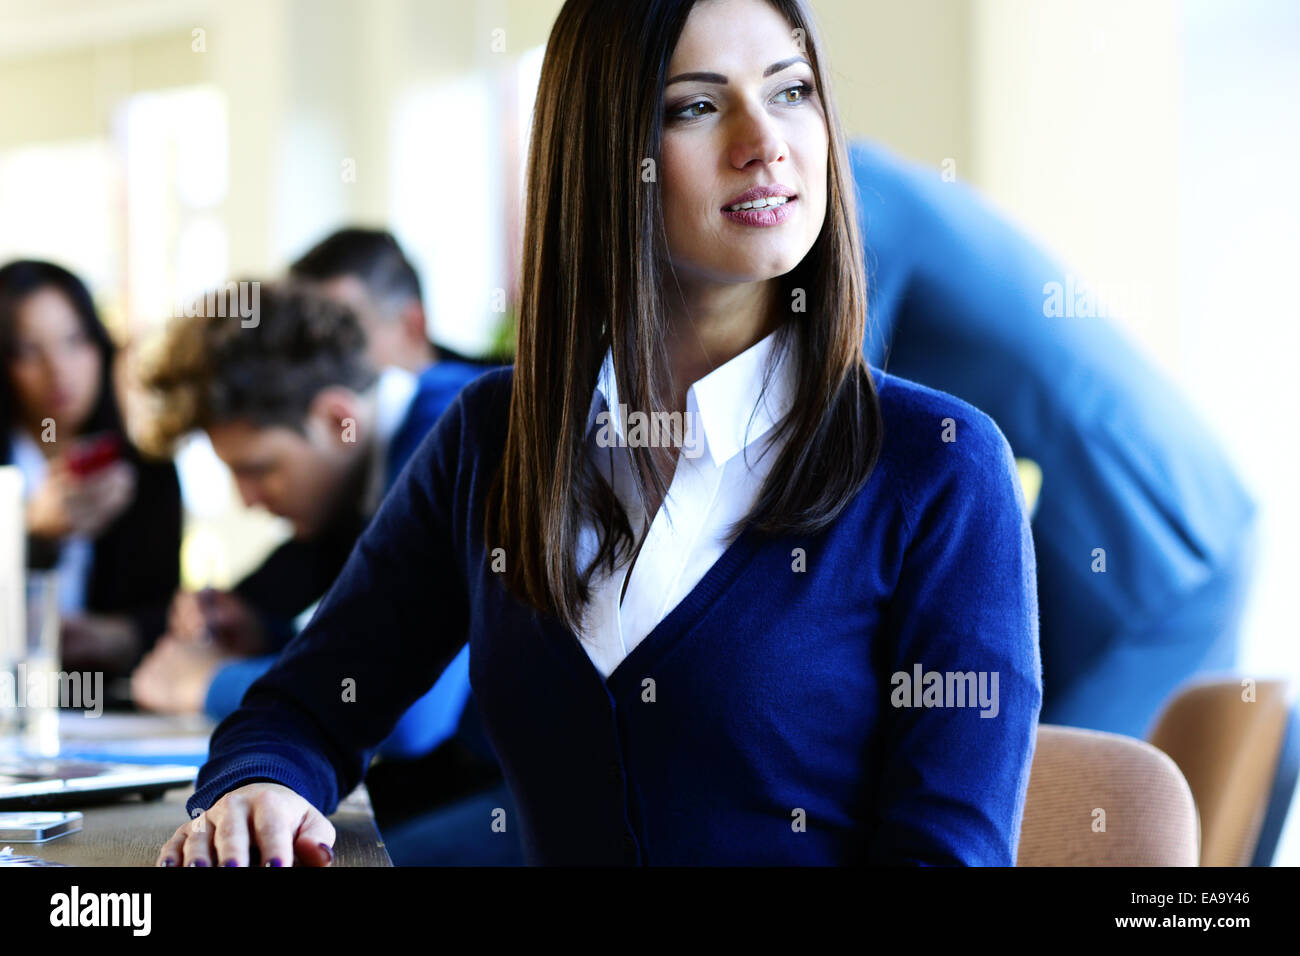 Pensive businesswoman sitting at the table with colleagues on background - Stock Image